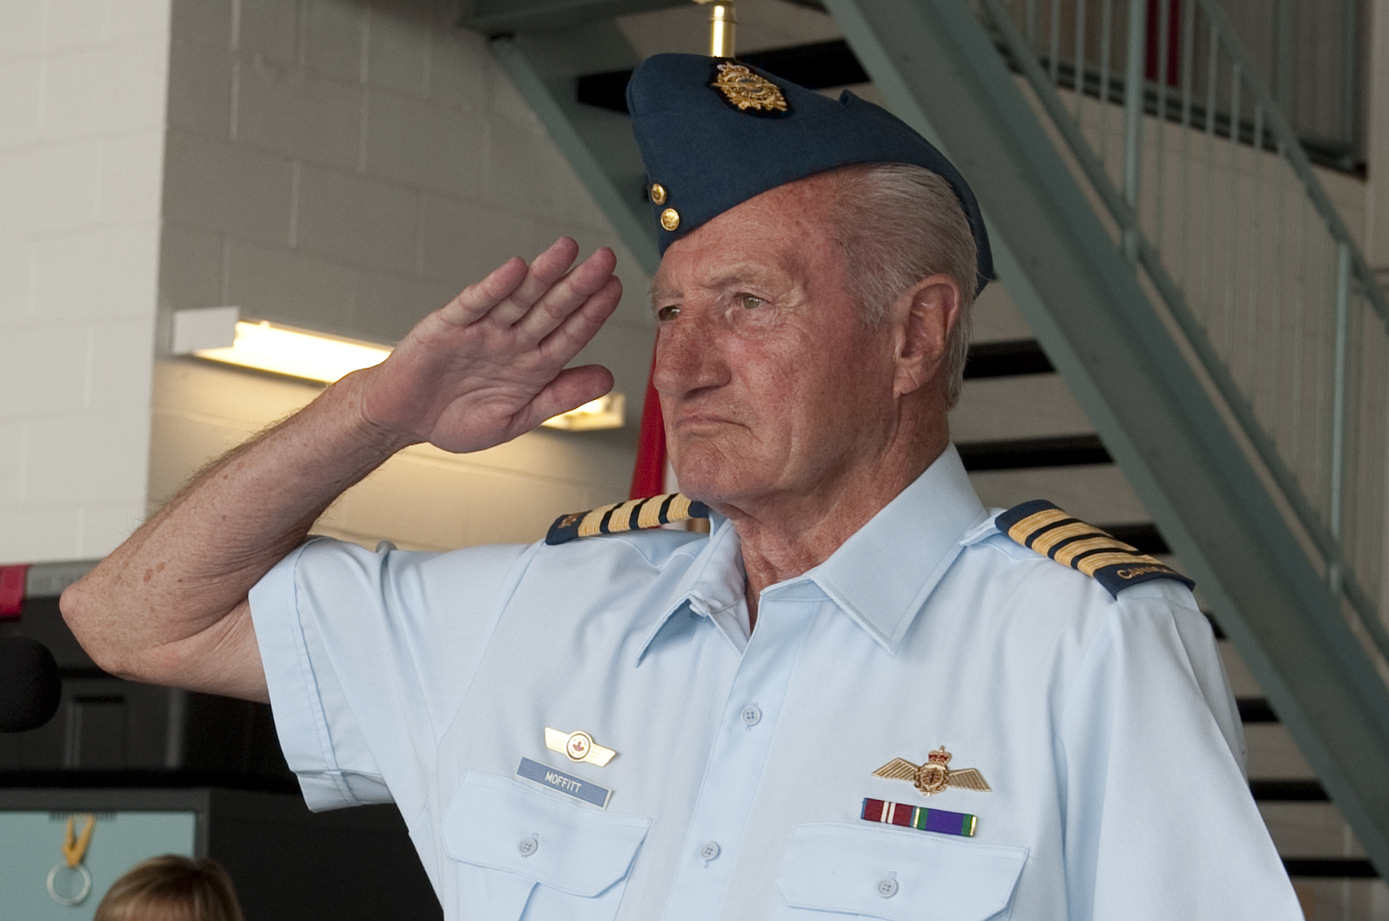 A head and shoulders photo of an older man in an air force uniform, saluting.